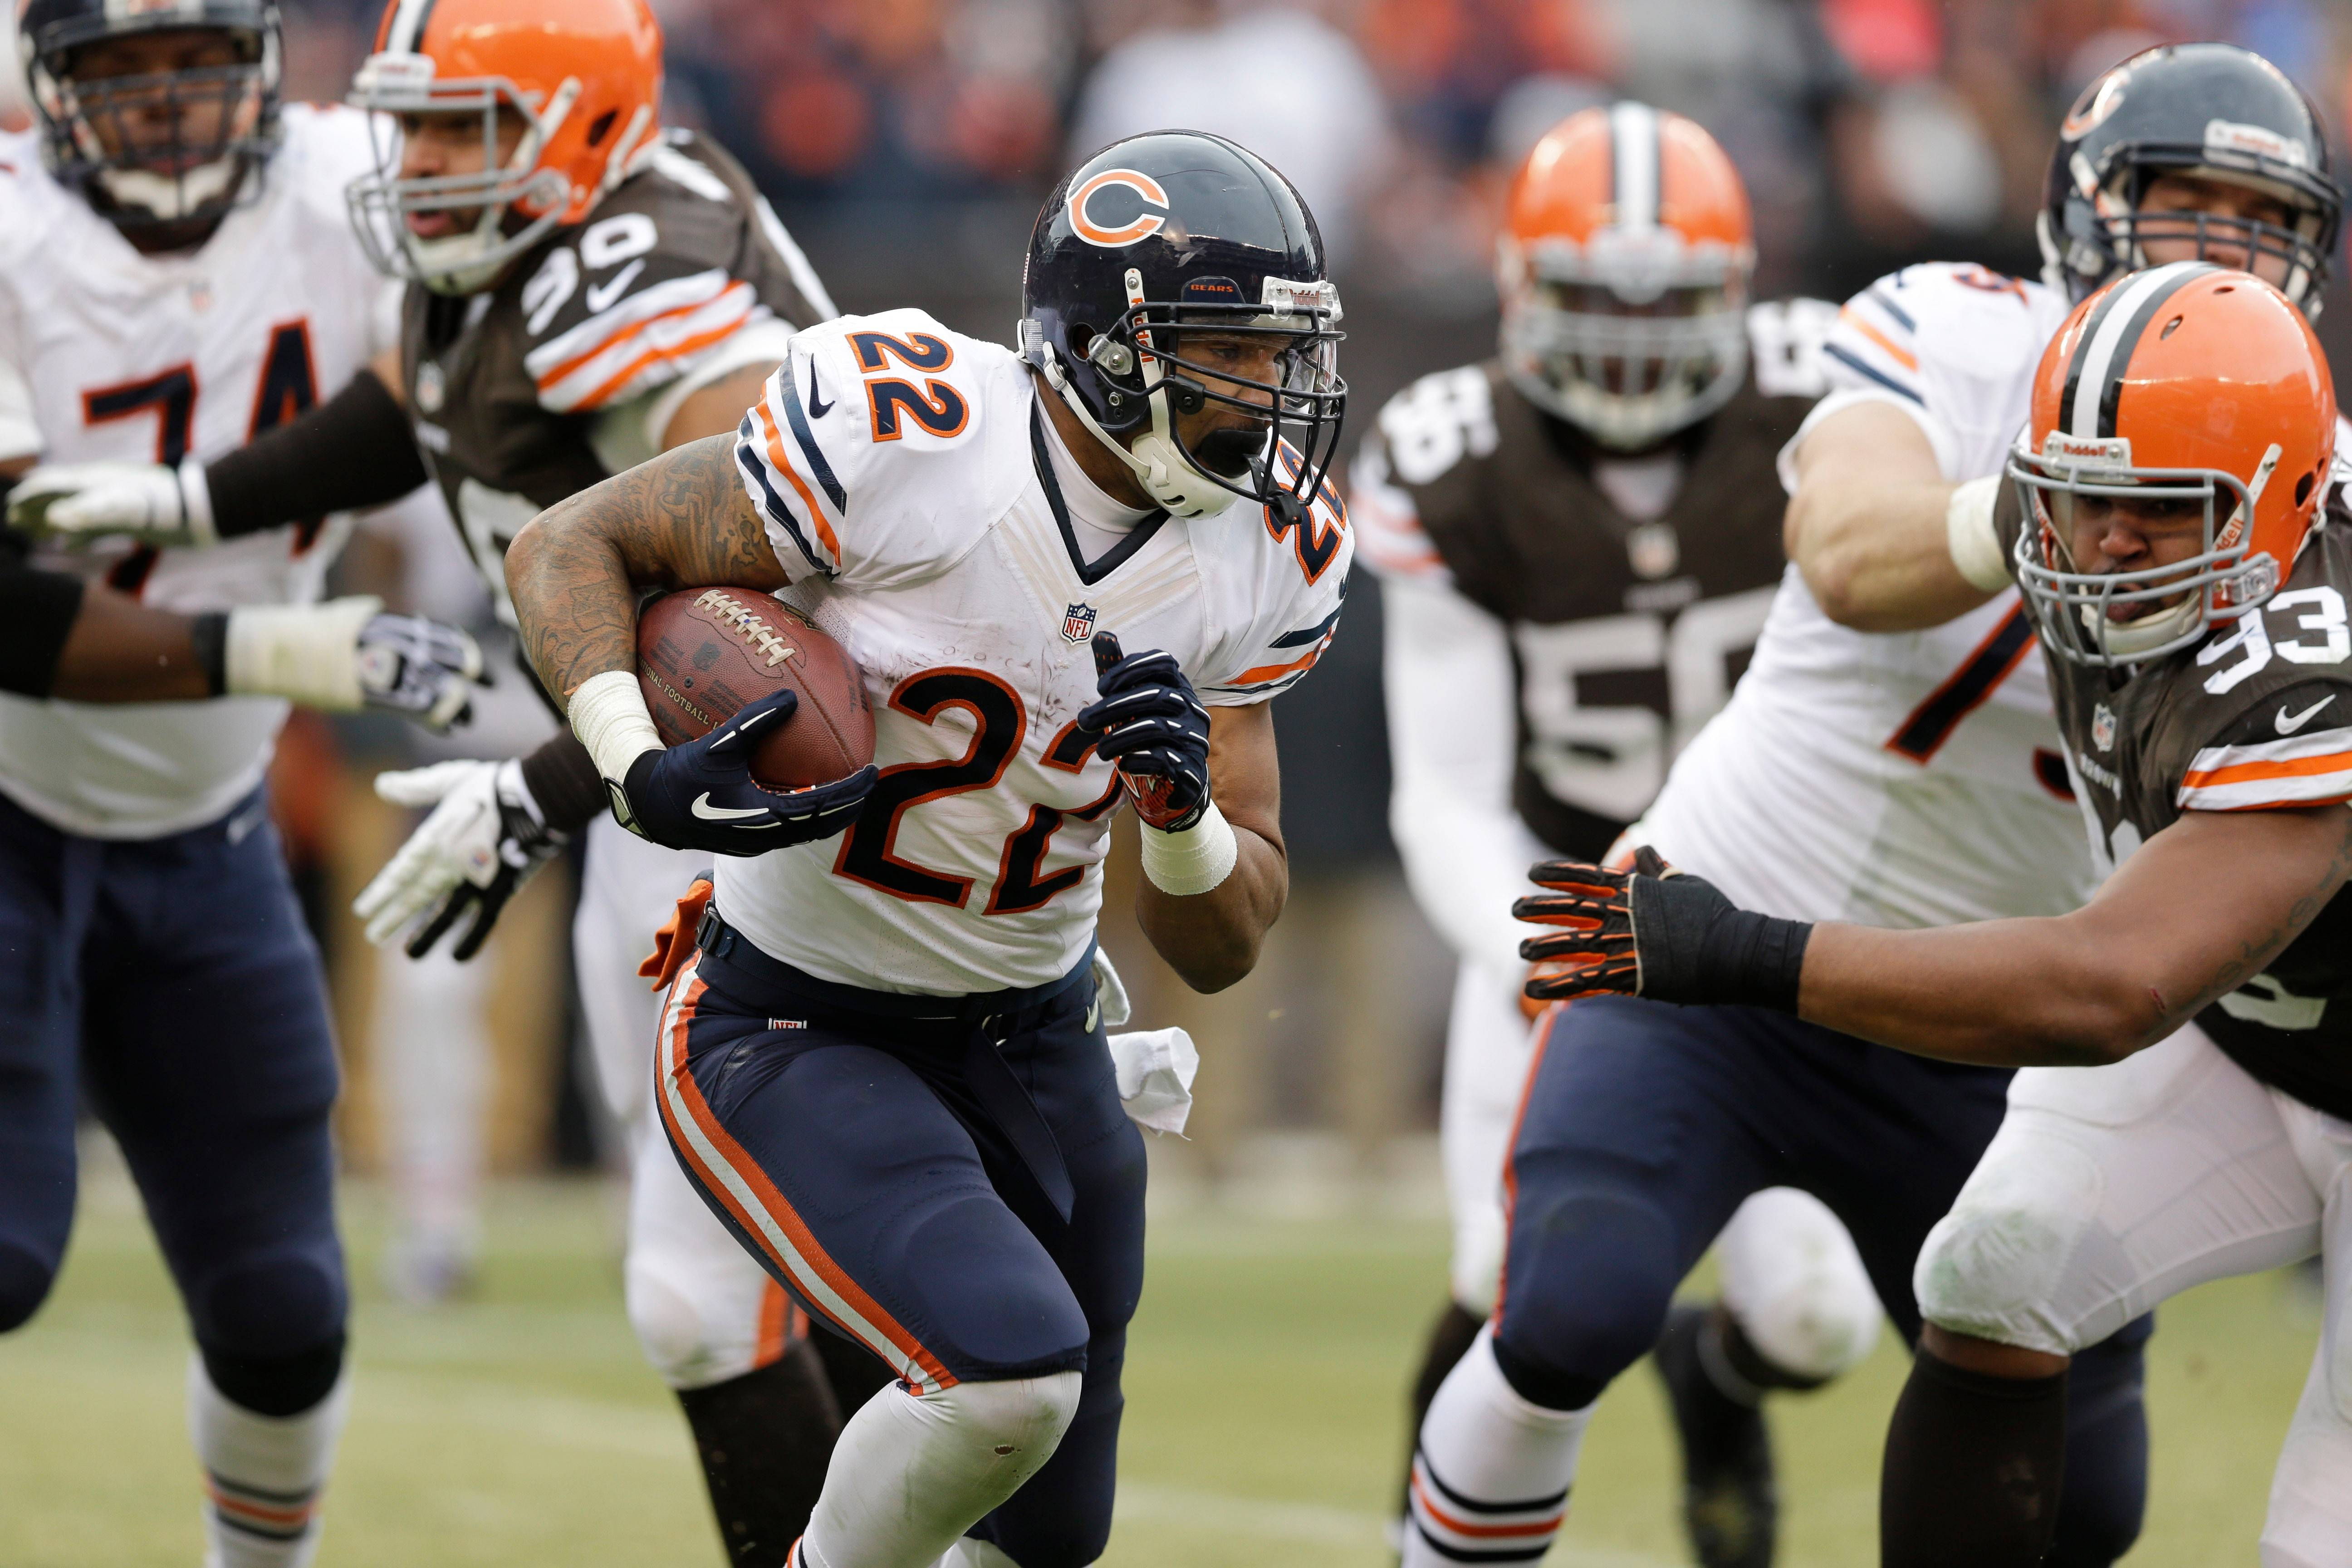 Bears running back Matt Forte is a workhorse who shows no signs of slowing down.